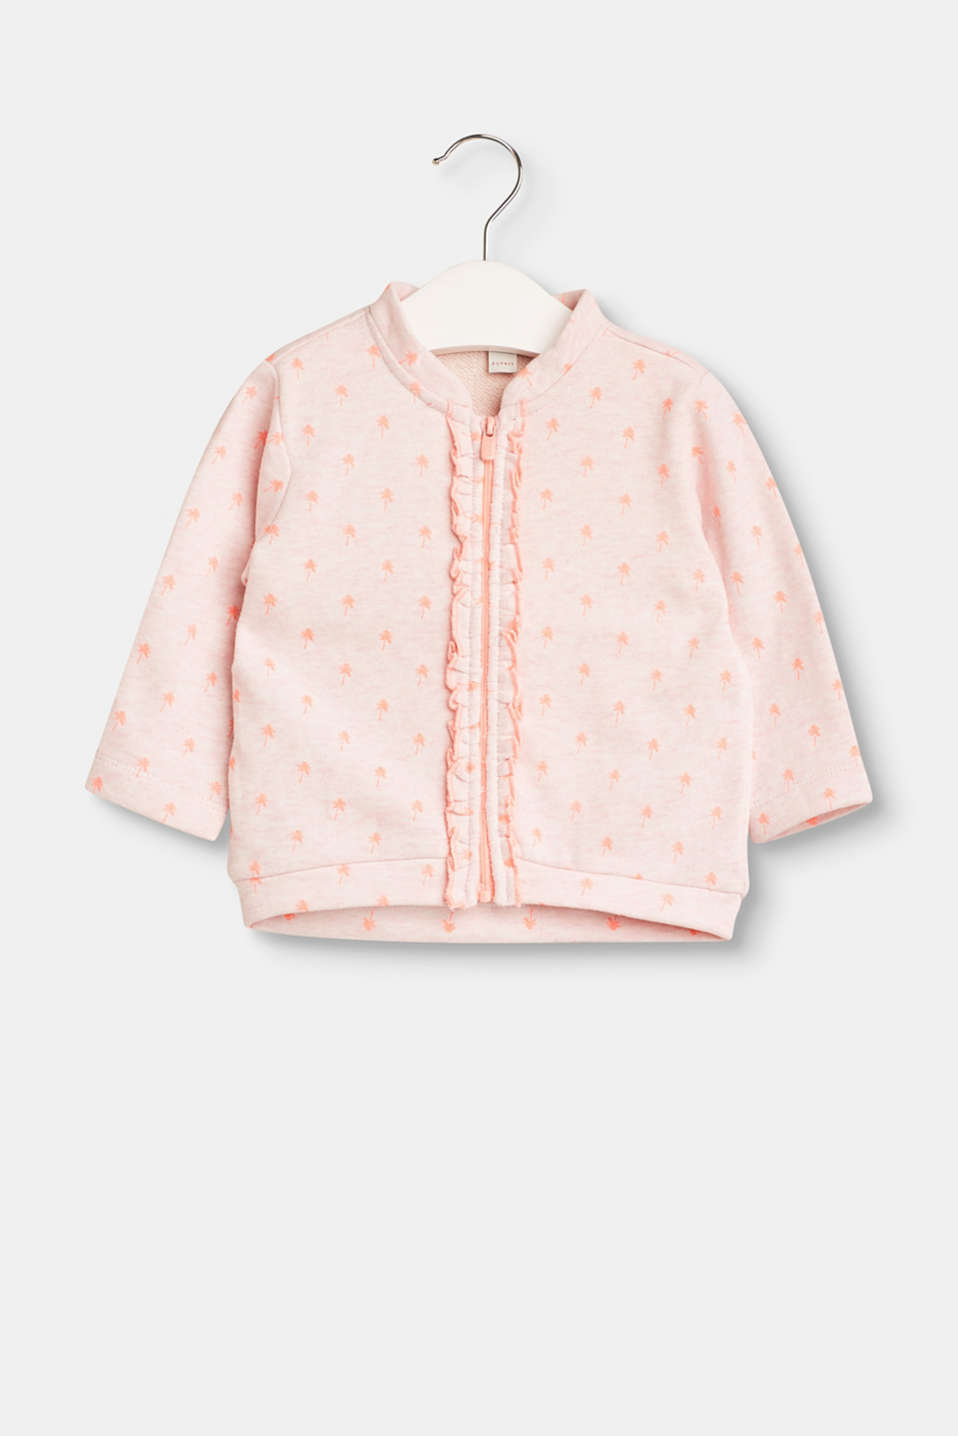 Esprit - Cotton cardigan with a palm tree print and frills